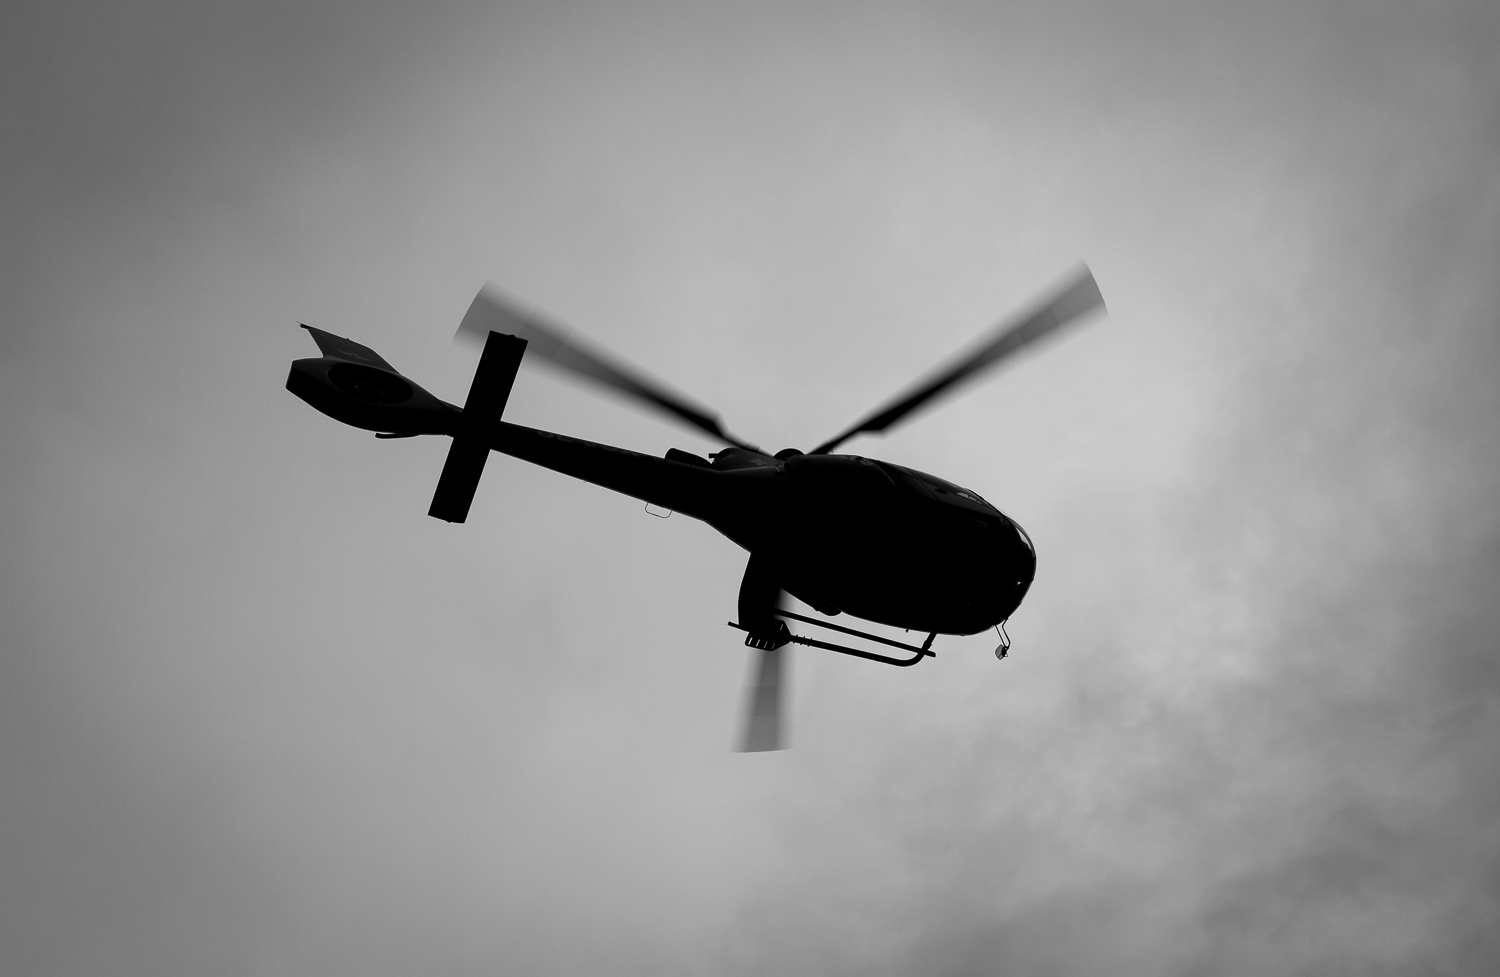 helicopter-heli-monochrome-black and white